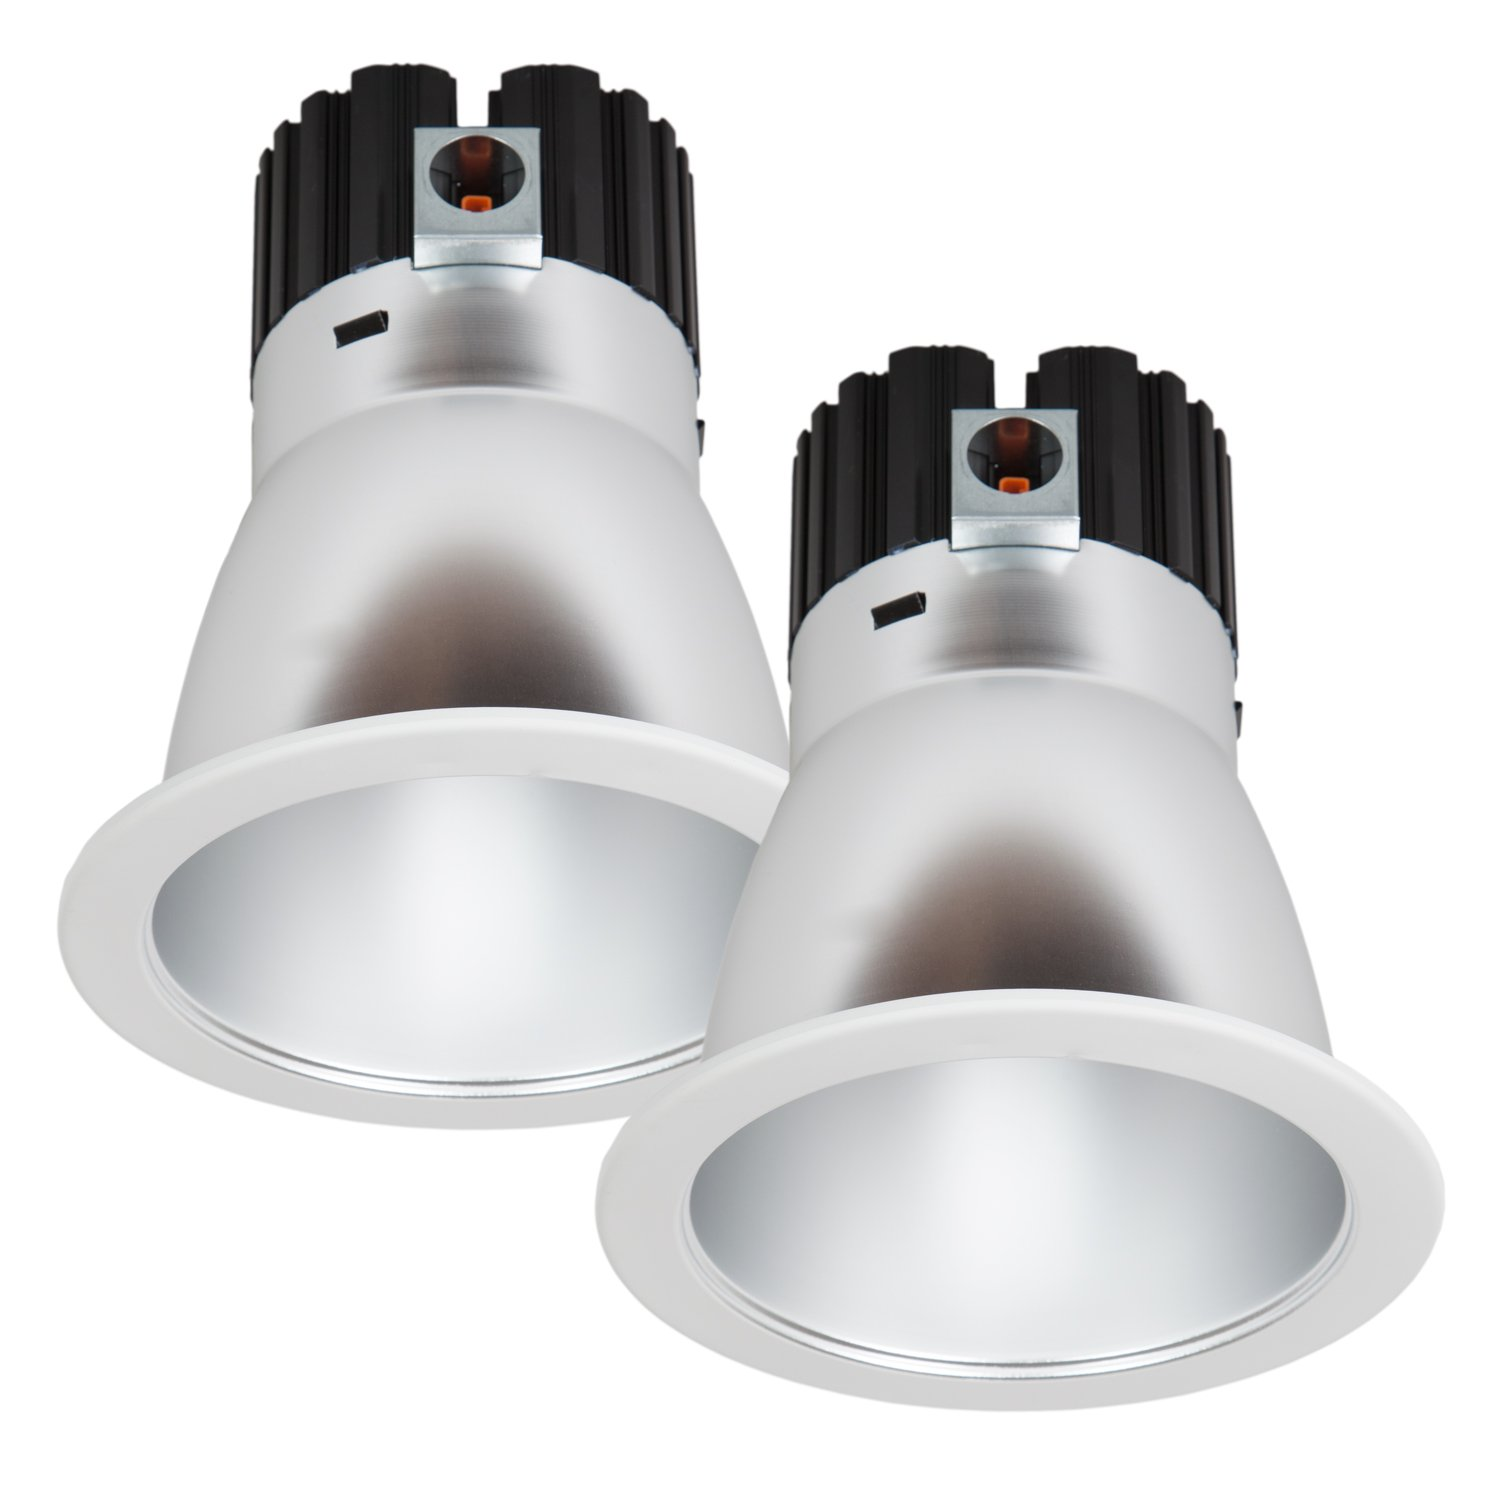 Maxxima 6 in. Commercial Recessed LED Downlight, Dimmable, 18 Watts, 1500 Lumens, 4000K Neutral White, Energy Star, Junction Box Included, Architectural Downlight (2 Pack)